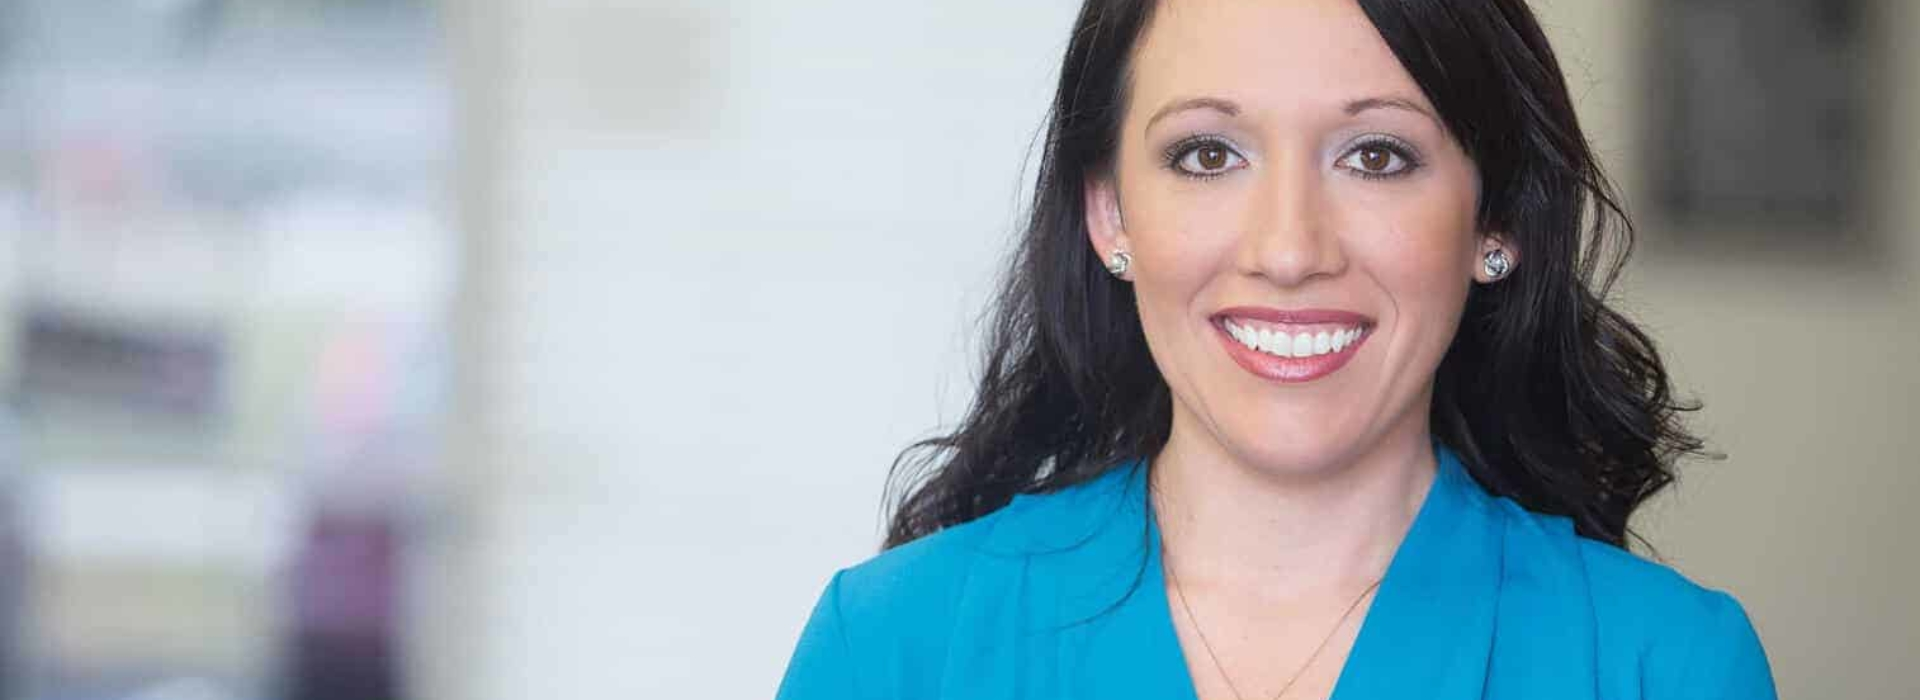 Candace Wawra, Hearing Instrument Specialist